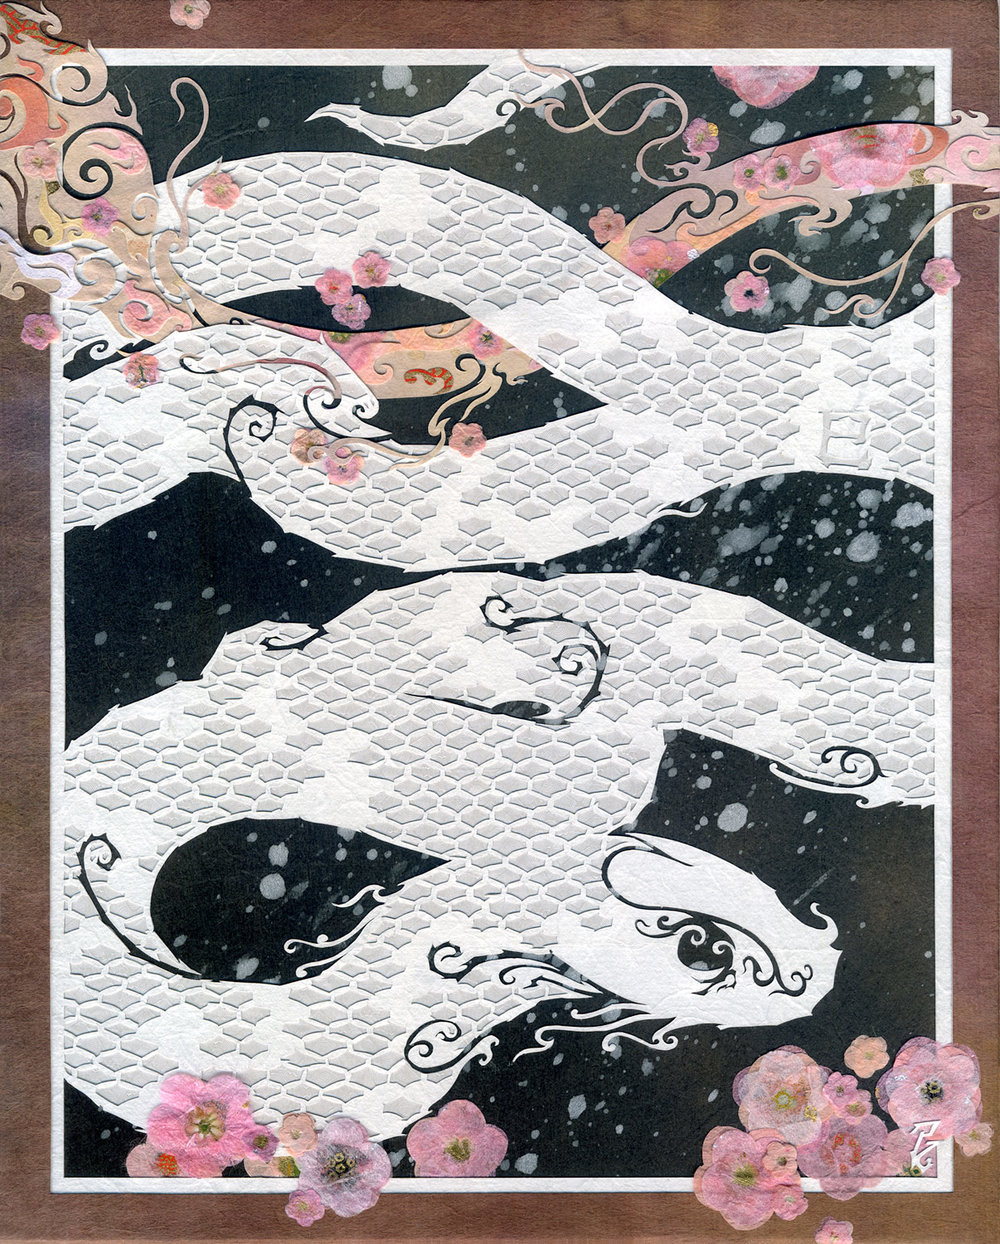 ⊛   Among the Petals, a White Serpent  ⊛  10 x 8 in • 254 x 203 mm ⊛  cut + torn washi + chiyogami paper / wood panel